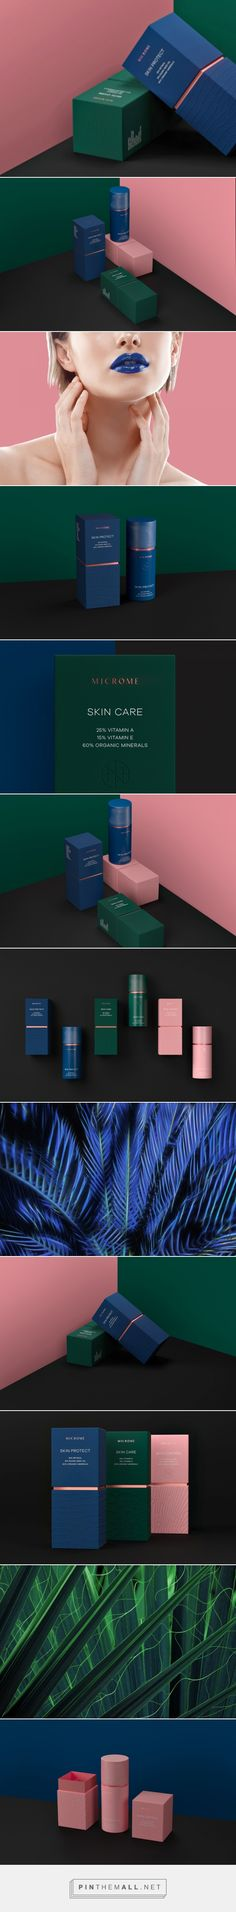 Microme Skincare Packaging by Funky Business   Fivestar Branding Agency – Design and Branding Agency & Curated Inspiration Gallery